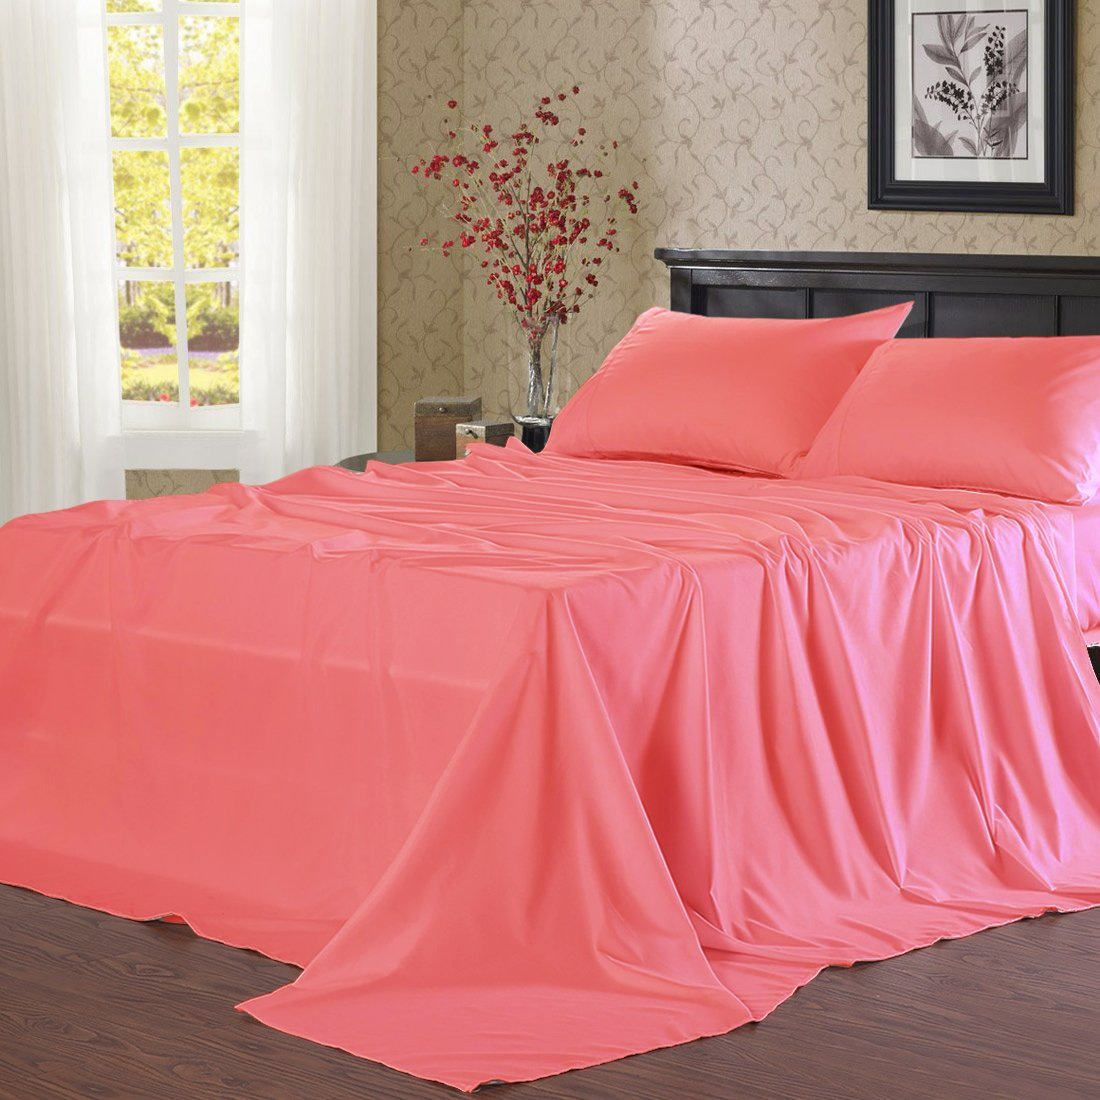 Balichun Microfiber Bed Sheet Set Super Soft Sheets with 18-Inch Deep Pocket, California King, Coral